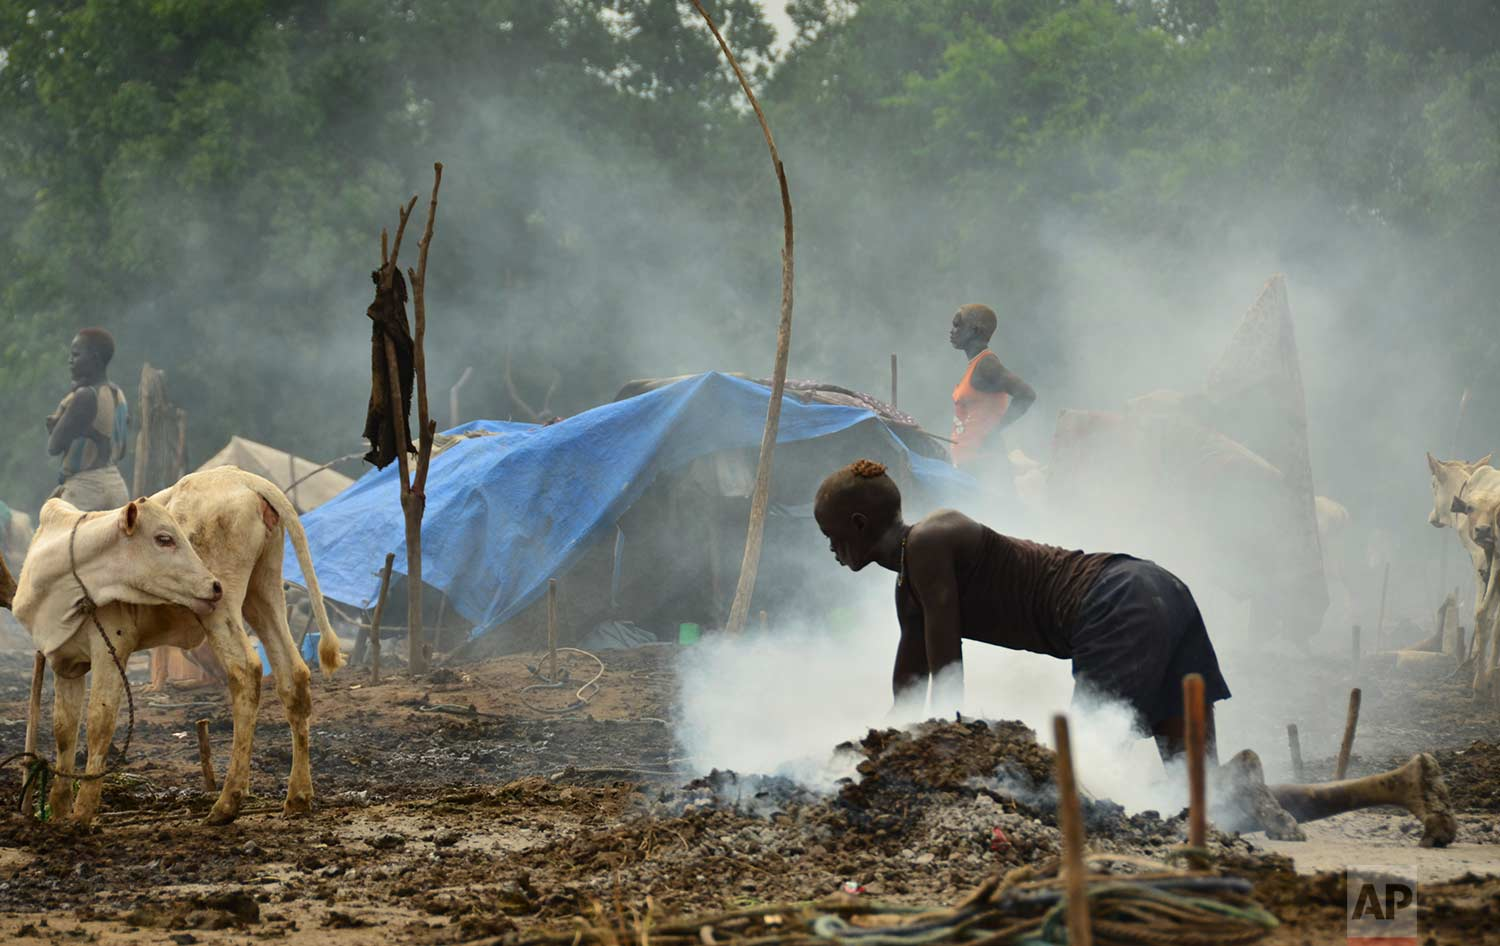 In this photo taken Monday, July 31, 2017, a young South Sudanese woman scrubs the dung-covered ground in preparation for cows to return from grazing, at a cattle camp outside the town of Rumbek, South Sudan. (AP Photo/Mariah Quesada)